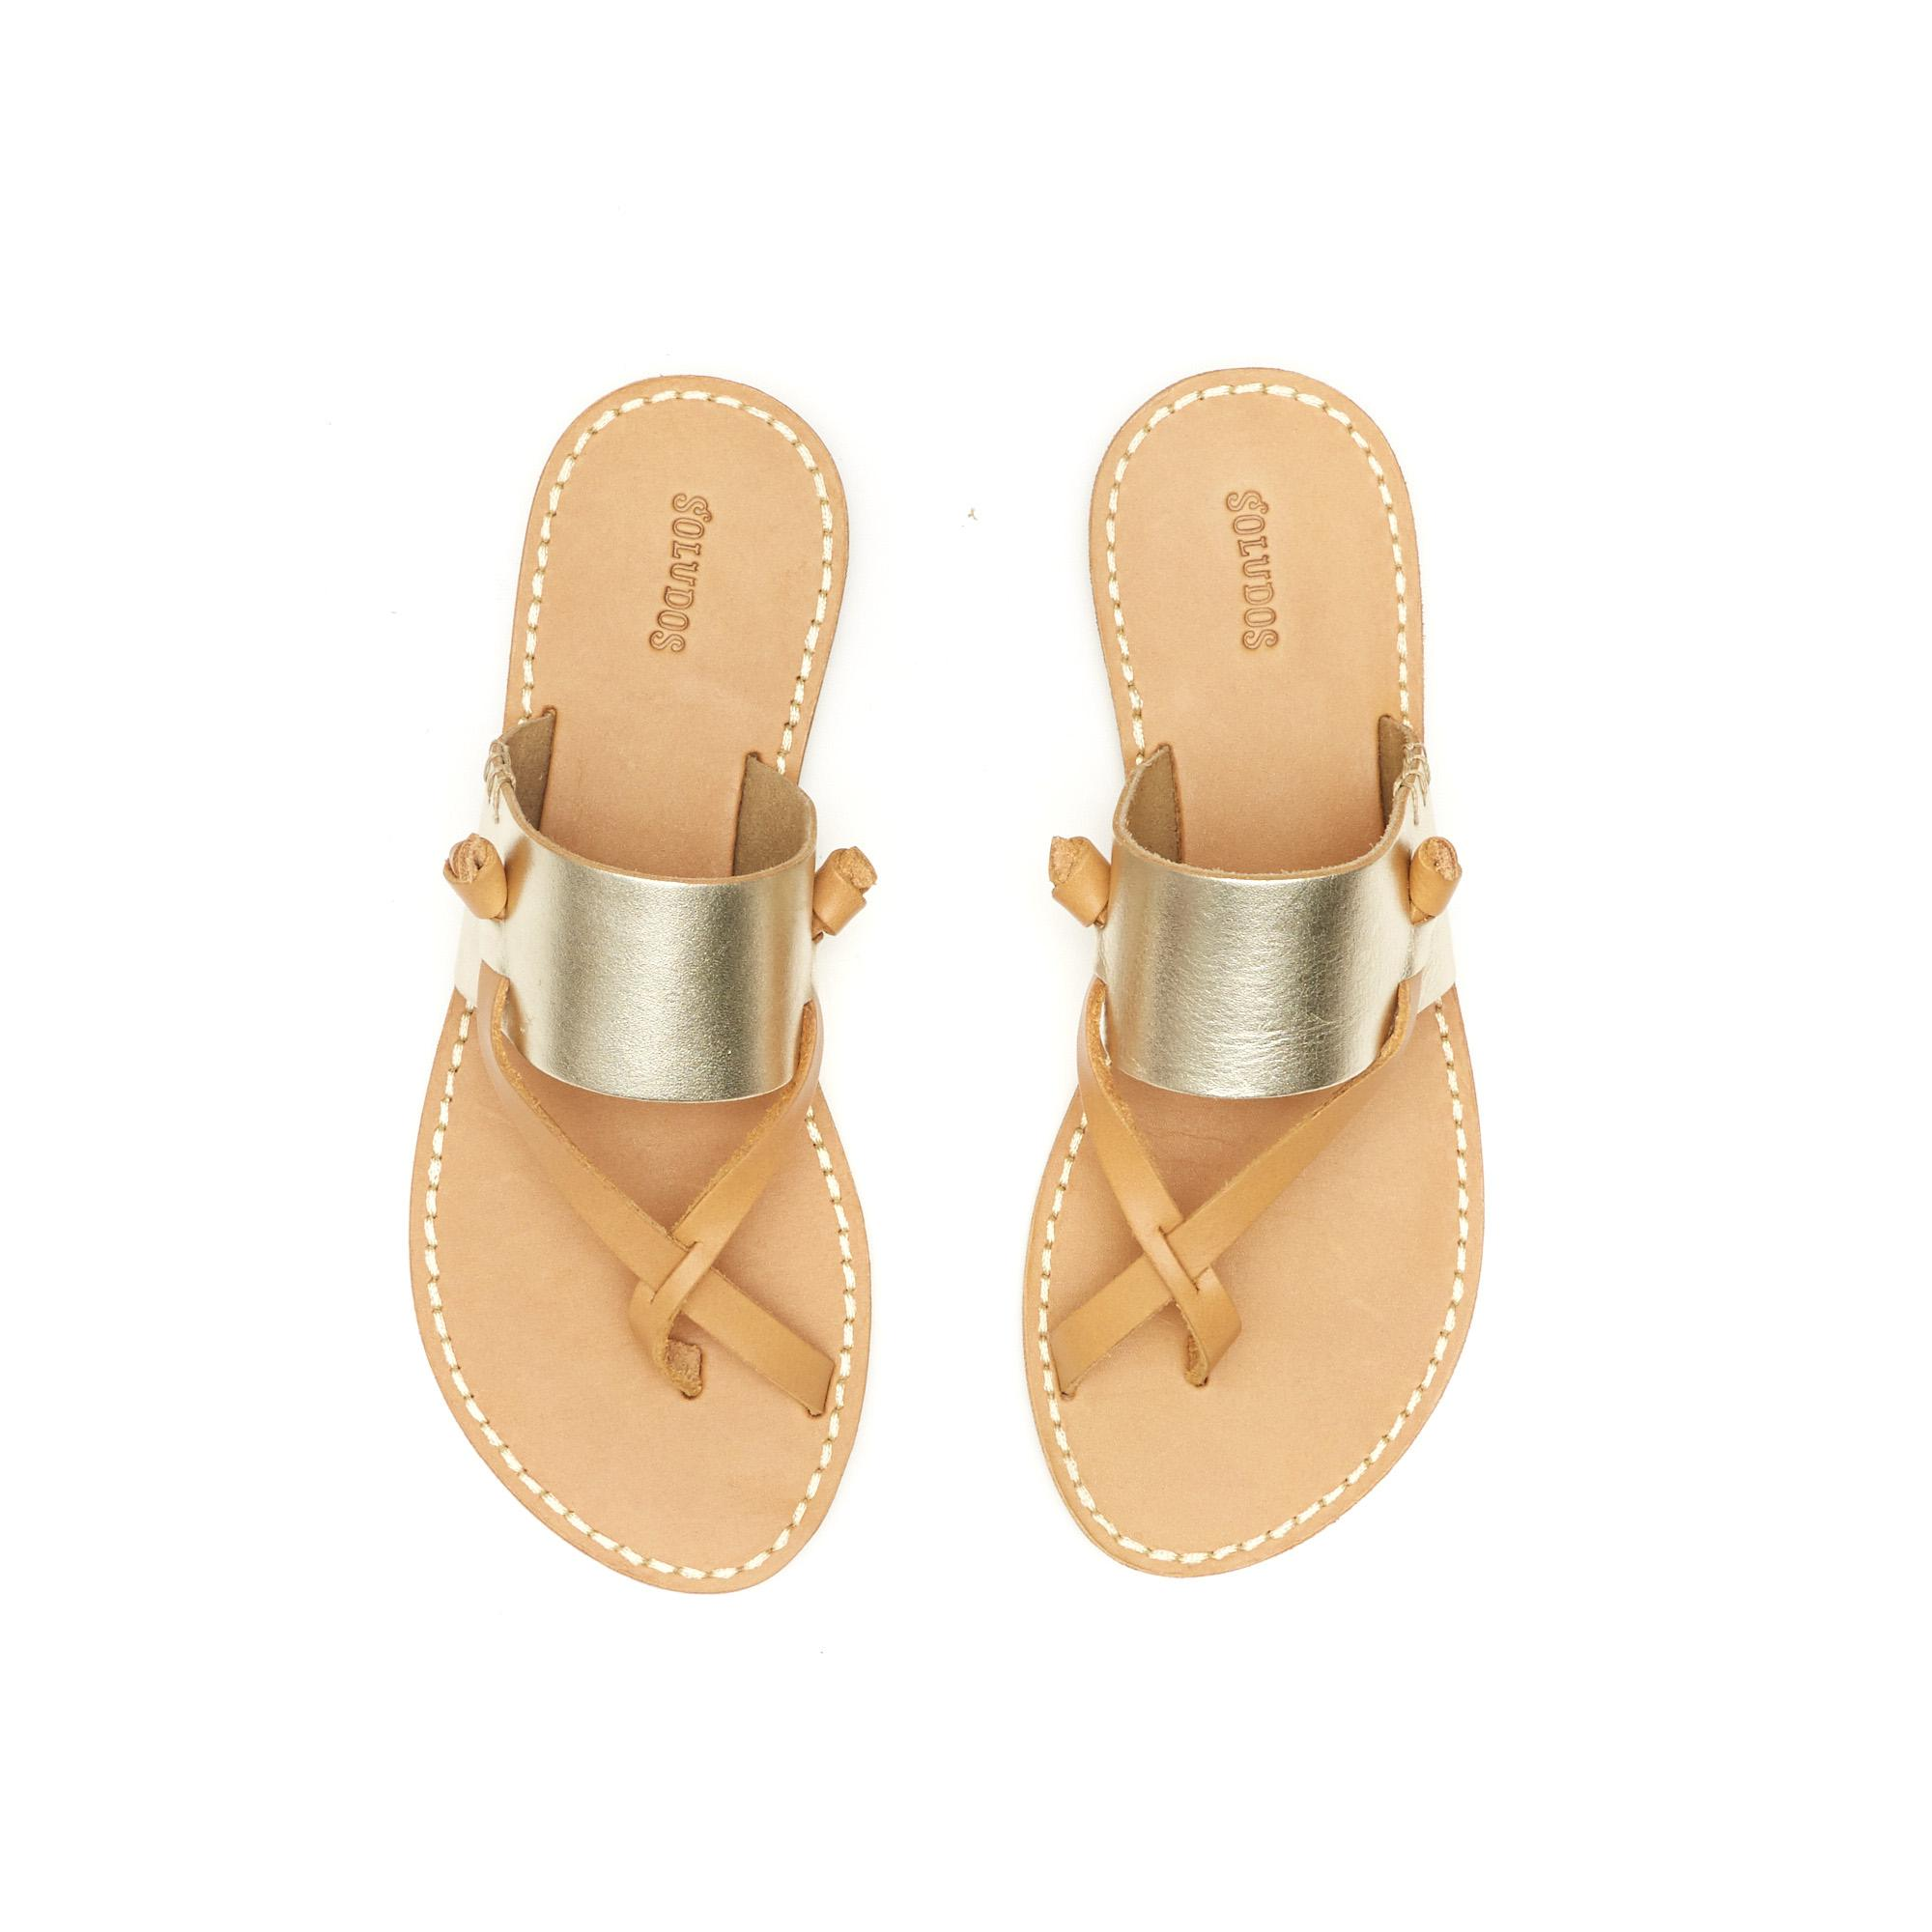 1879705faaf Soludos Metallic Leather Slotted Thong Sandal in Metallic - Lyst